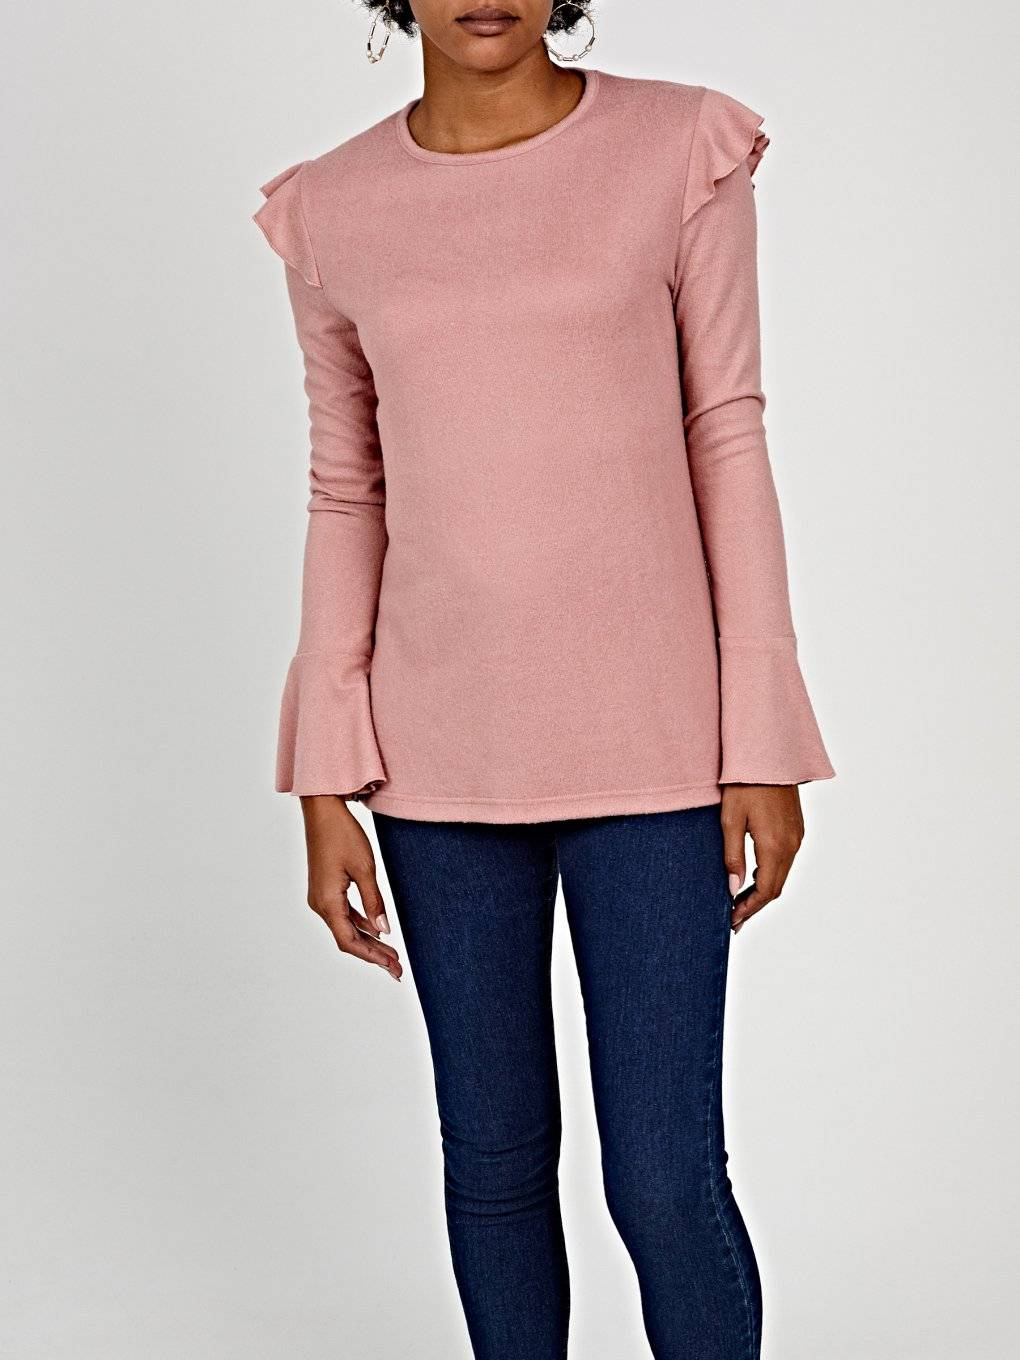 Jumper with ruffle sleeve